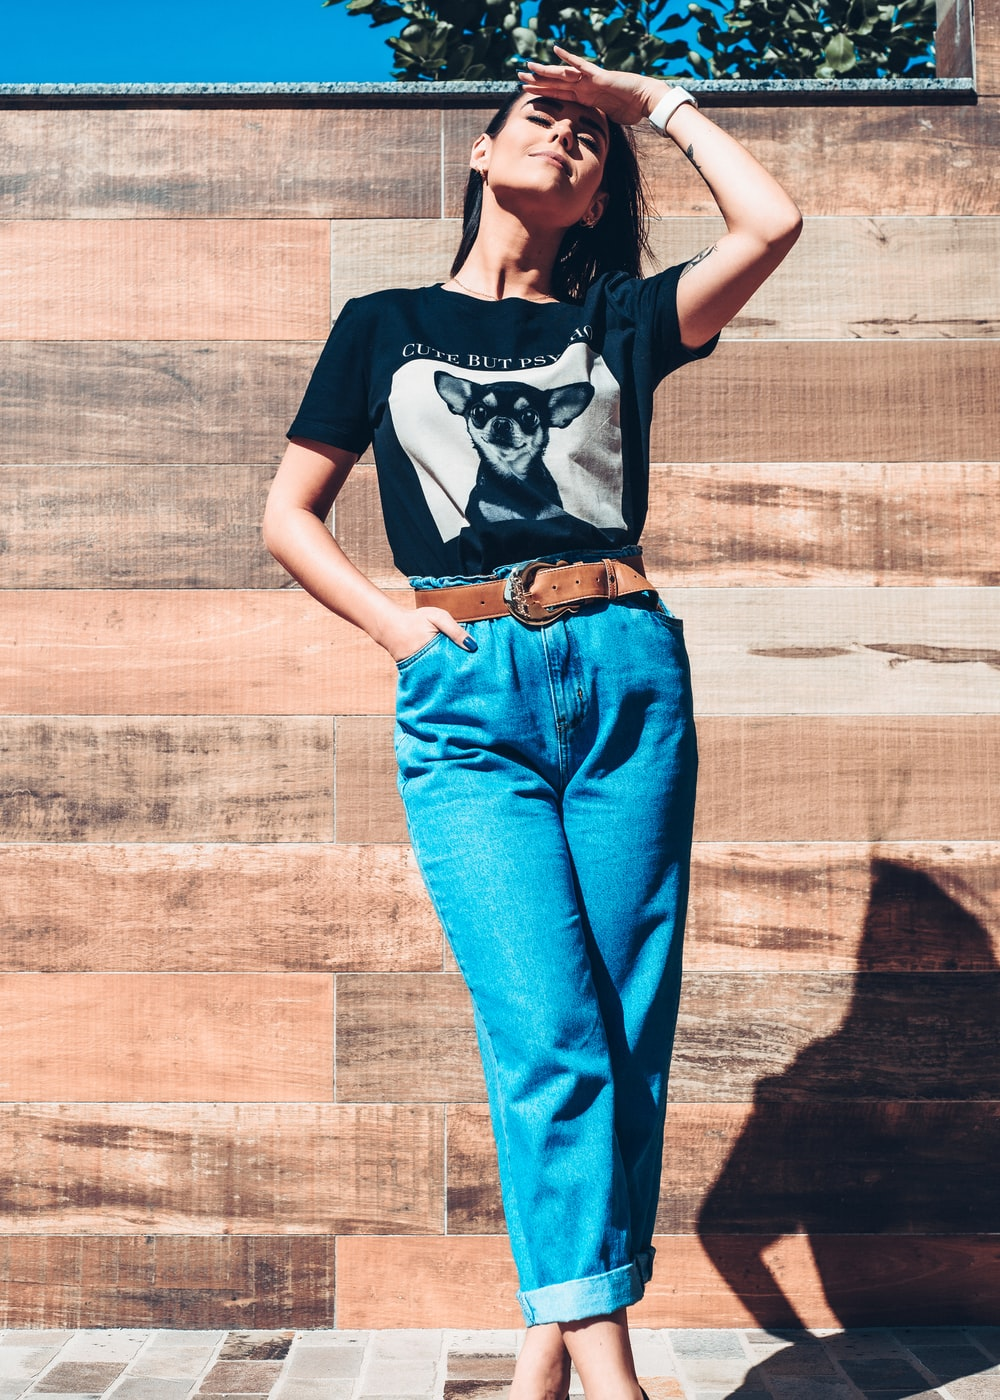 woman in black and white t-shirt and blue denim jeans standing on brown wooden floor